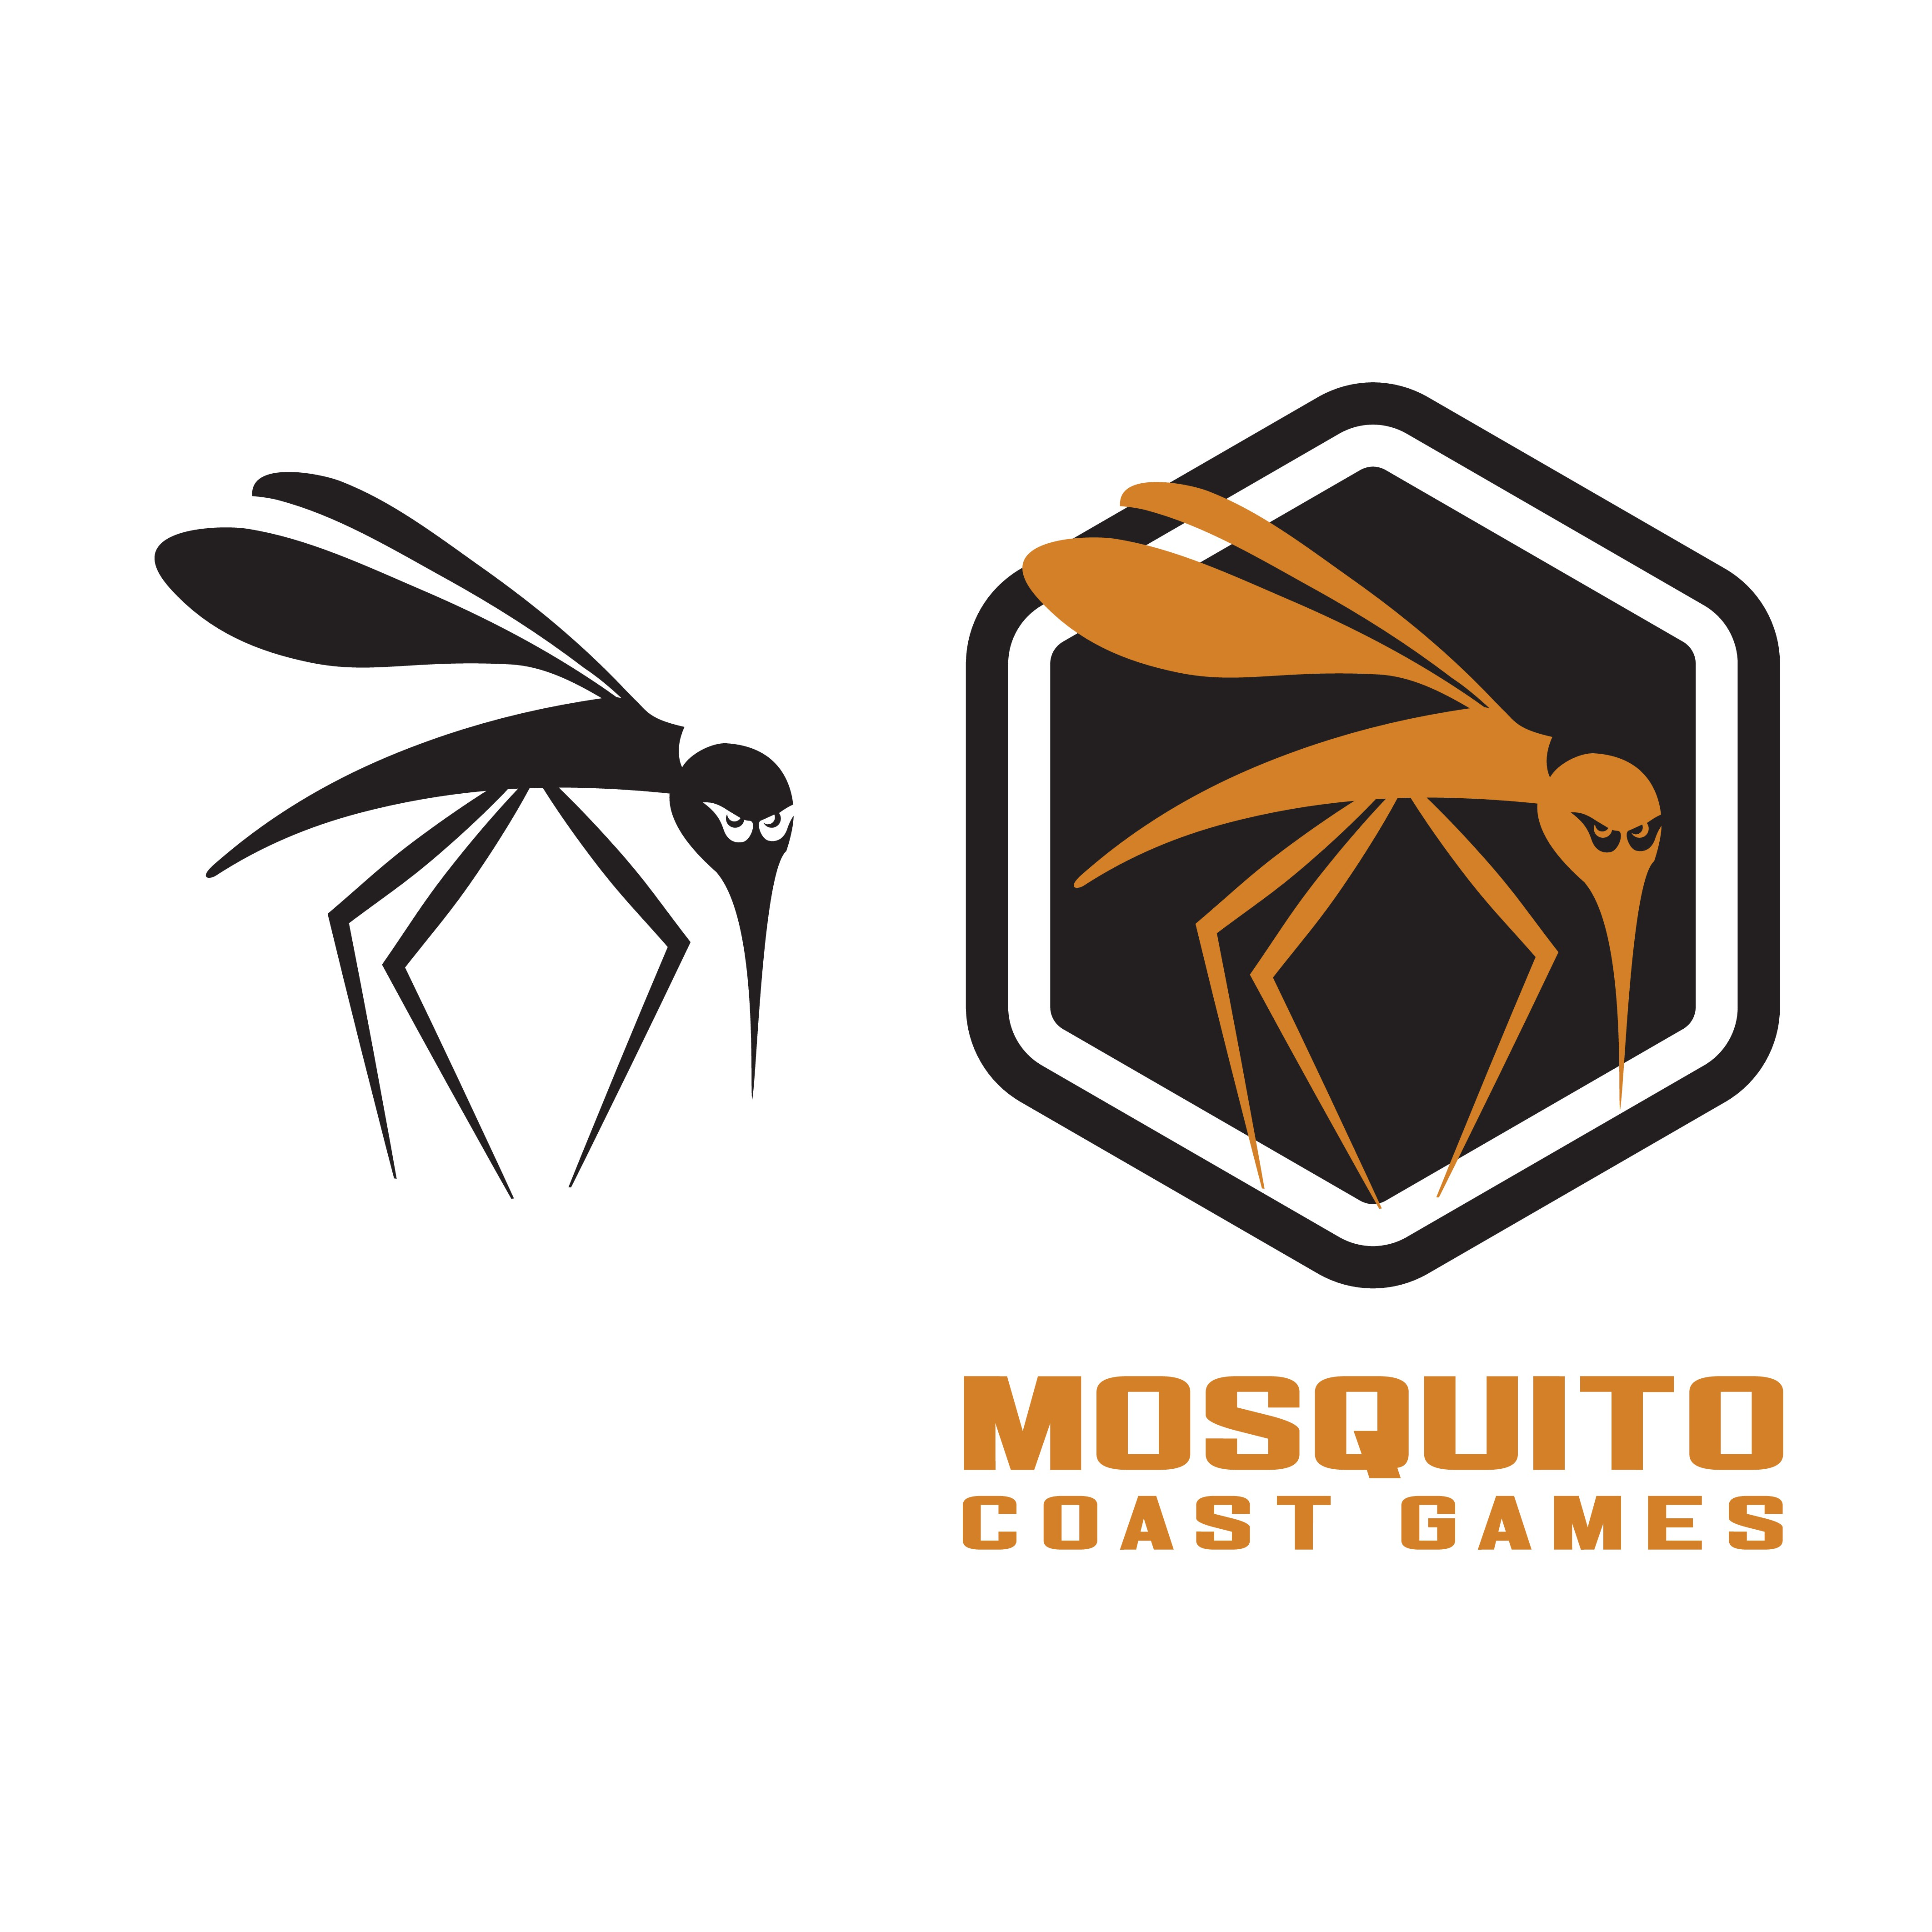 Get your feet wet with Mosquito Coast Games